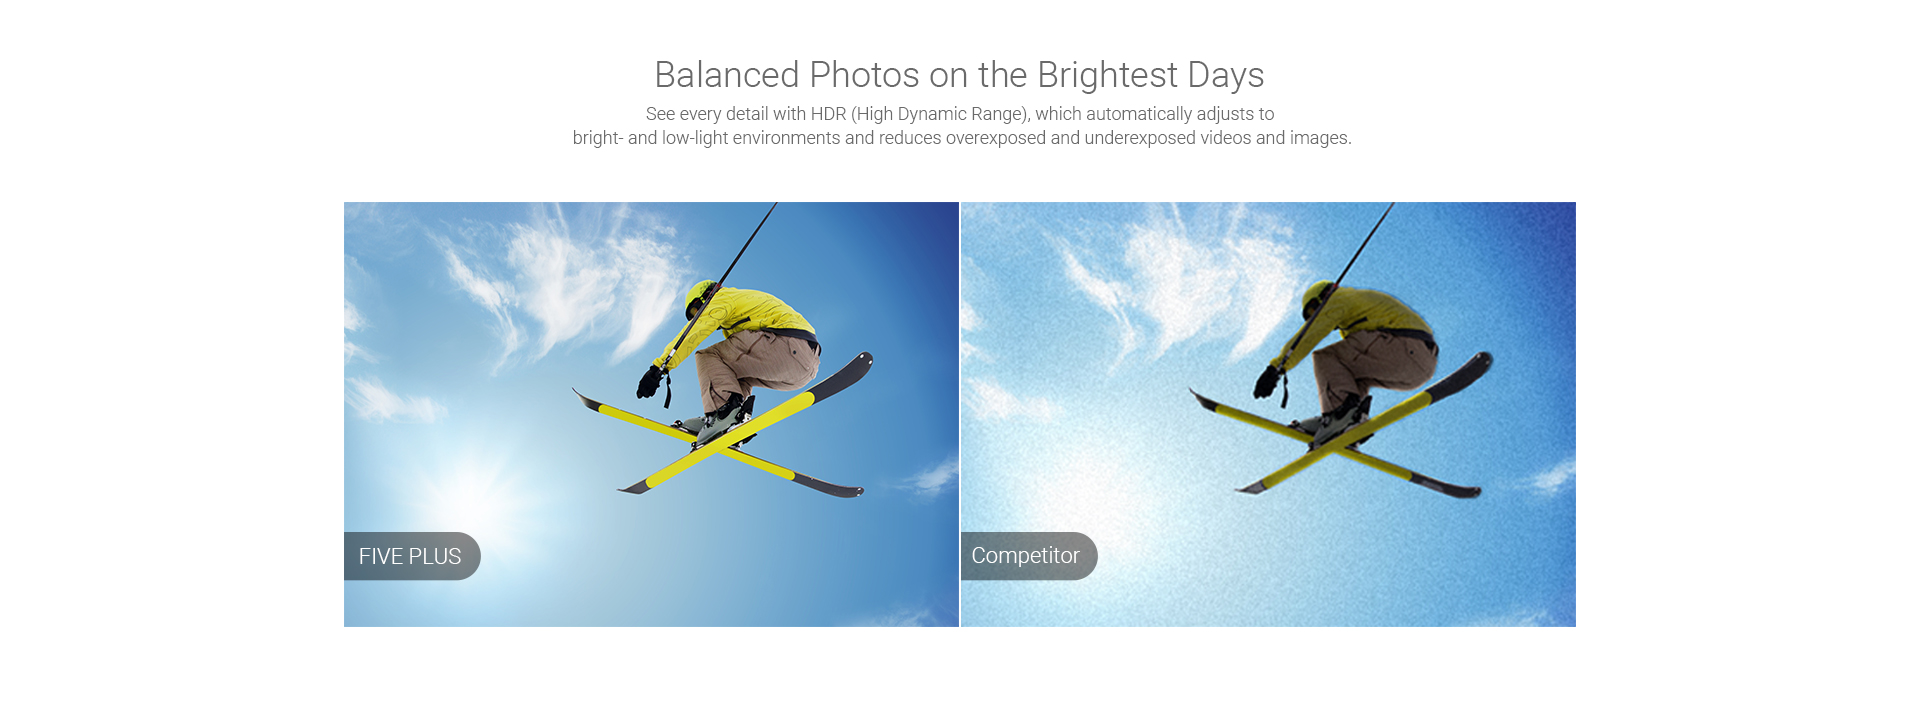 Balanced Photos on the Brightest Days